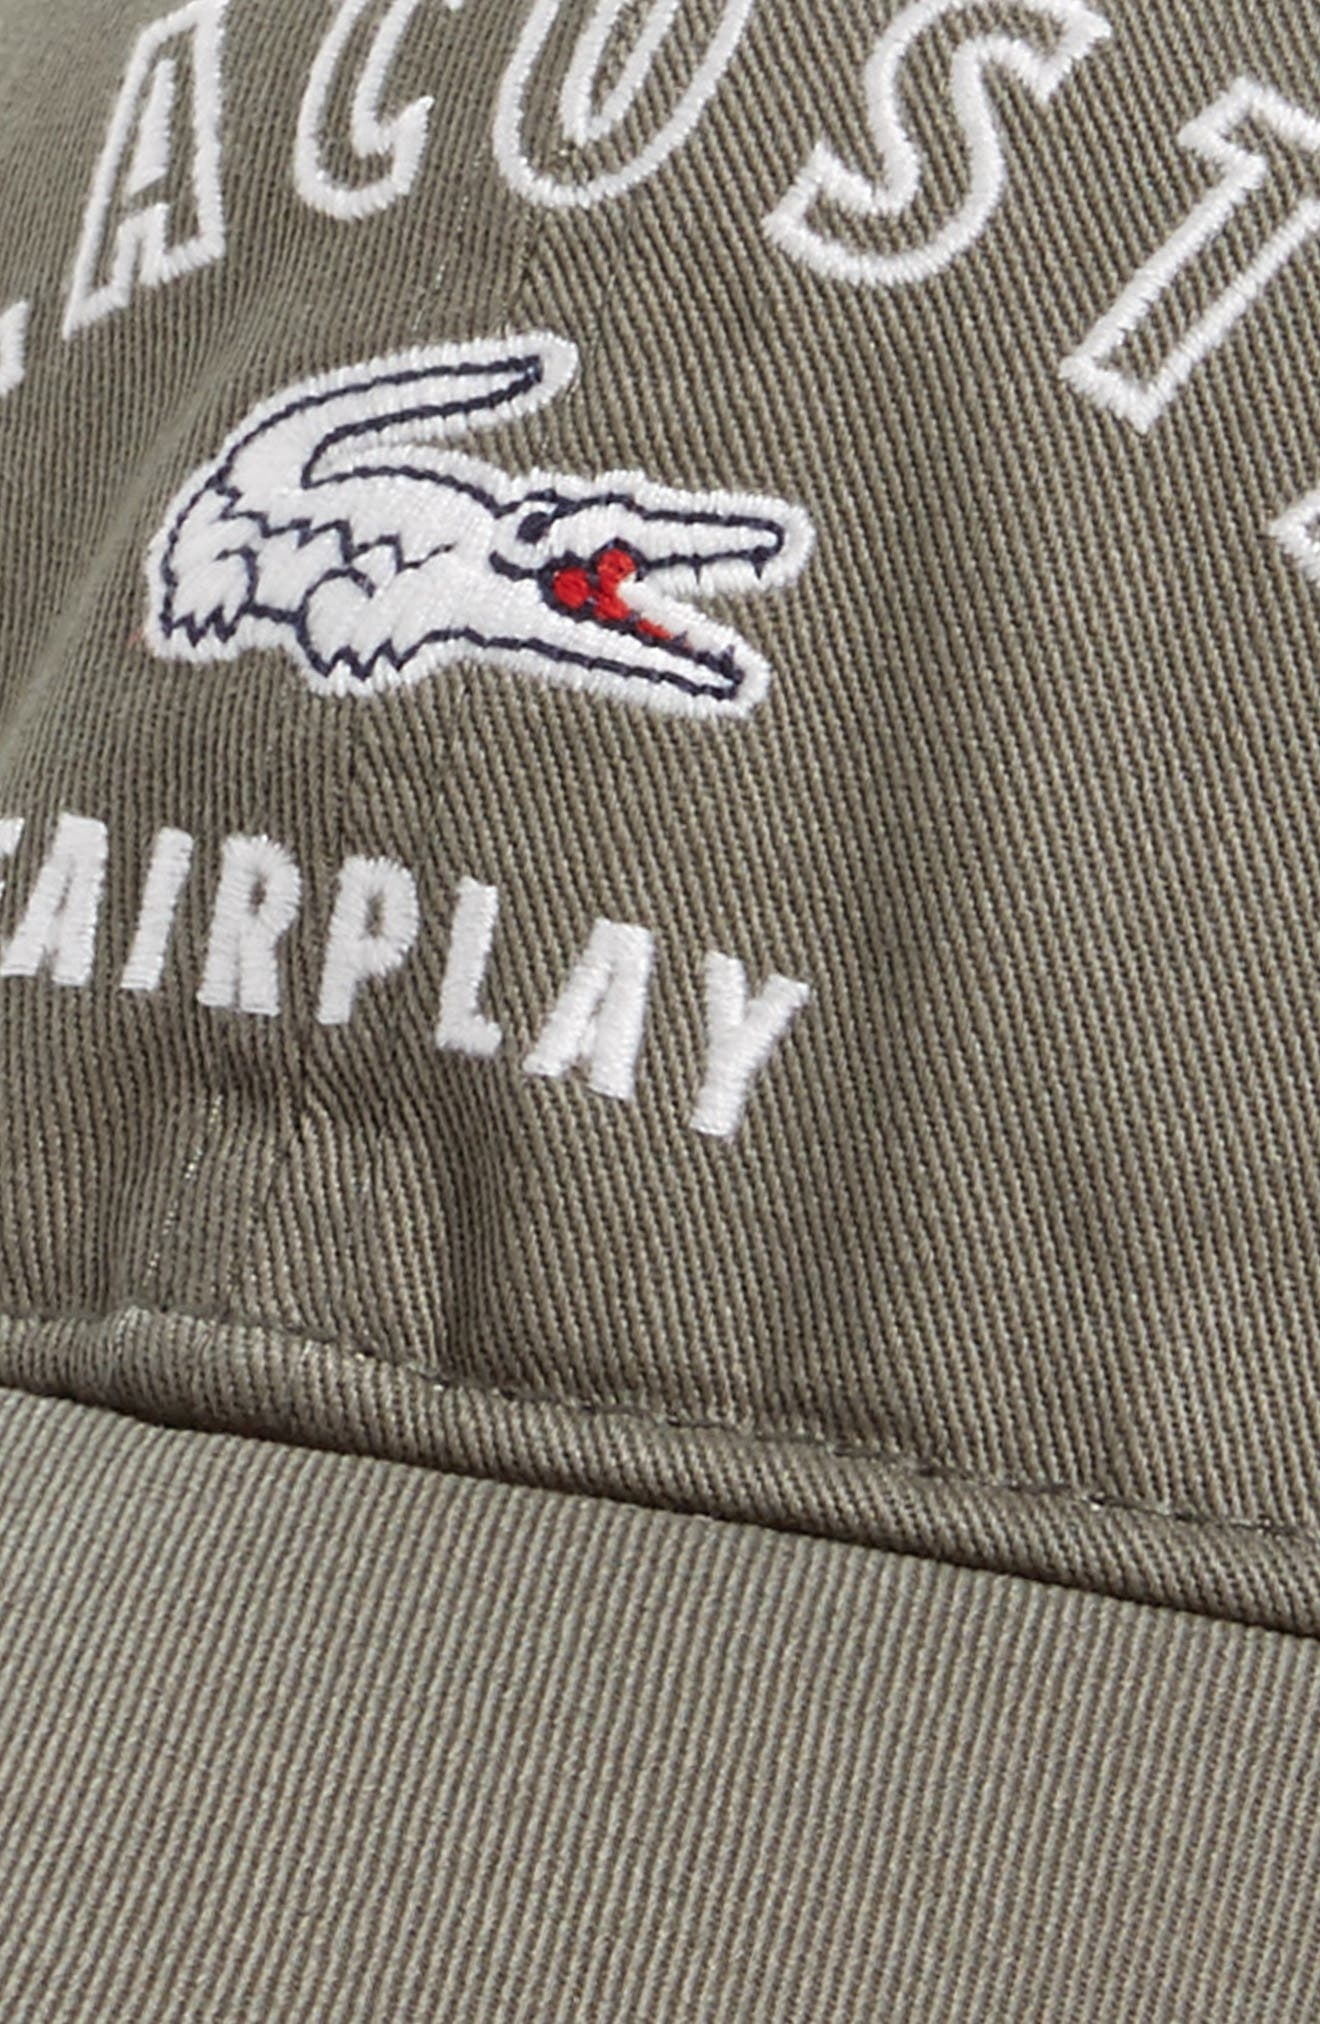 Fairplay Gabardine Ball Cap,                             Alternate thumbnail 3, color,                             359